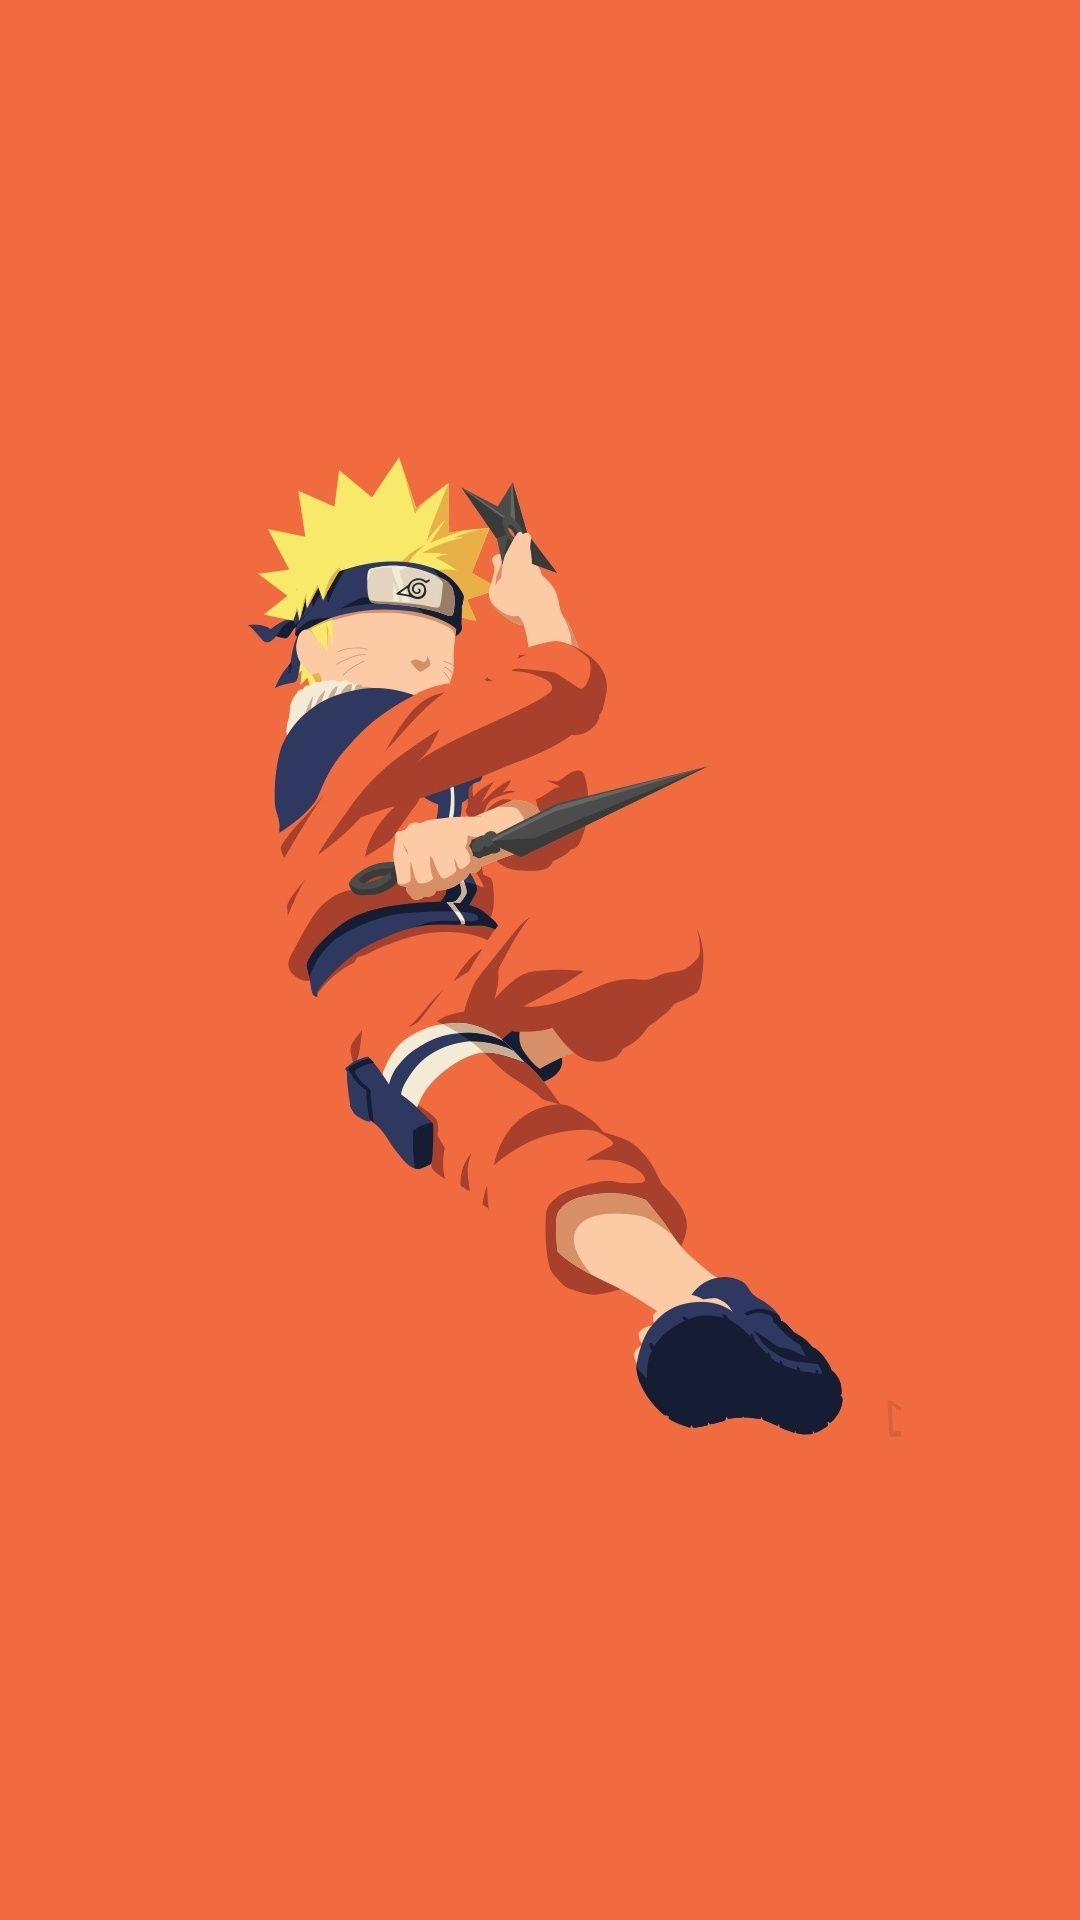 Minimal Naruto Uzumaki Art 1080x1920 Wallpaper Naruto Uzumaki Naruto Wallpaper Iphone Naruto Wallpaper